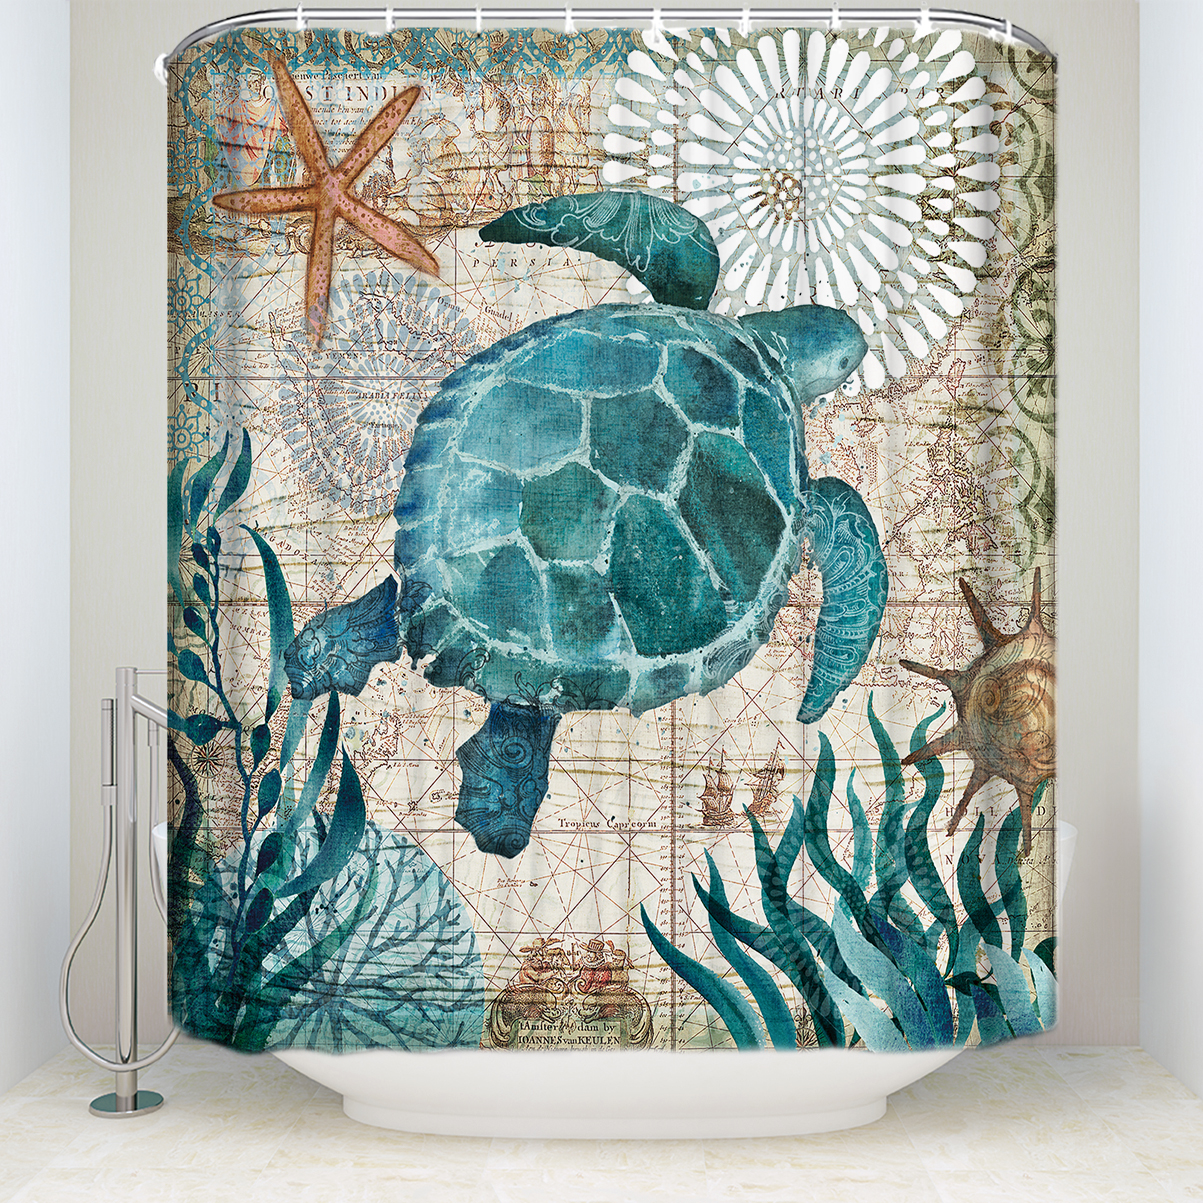 Incredible Us 5 39 46 Off Fabric Shower Curtain Sea Turtle Home Decor Bathroom Accessories Waterproof Polyester Whale Octopus Seahorse Bath Curtains In Shower Download Free Architecture Designs Scobabritishbridgeorg